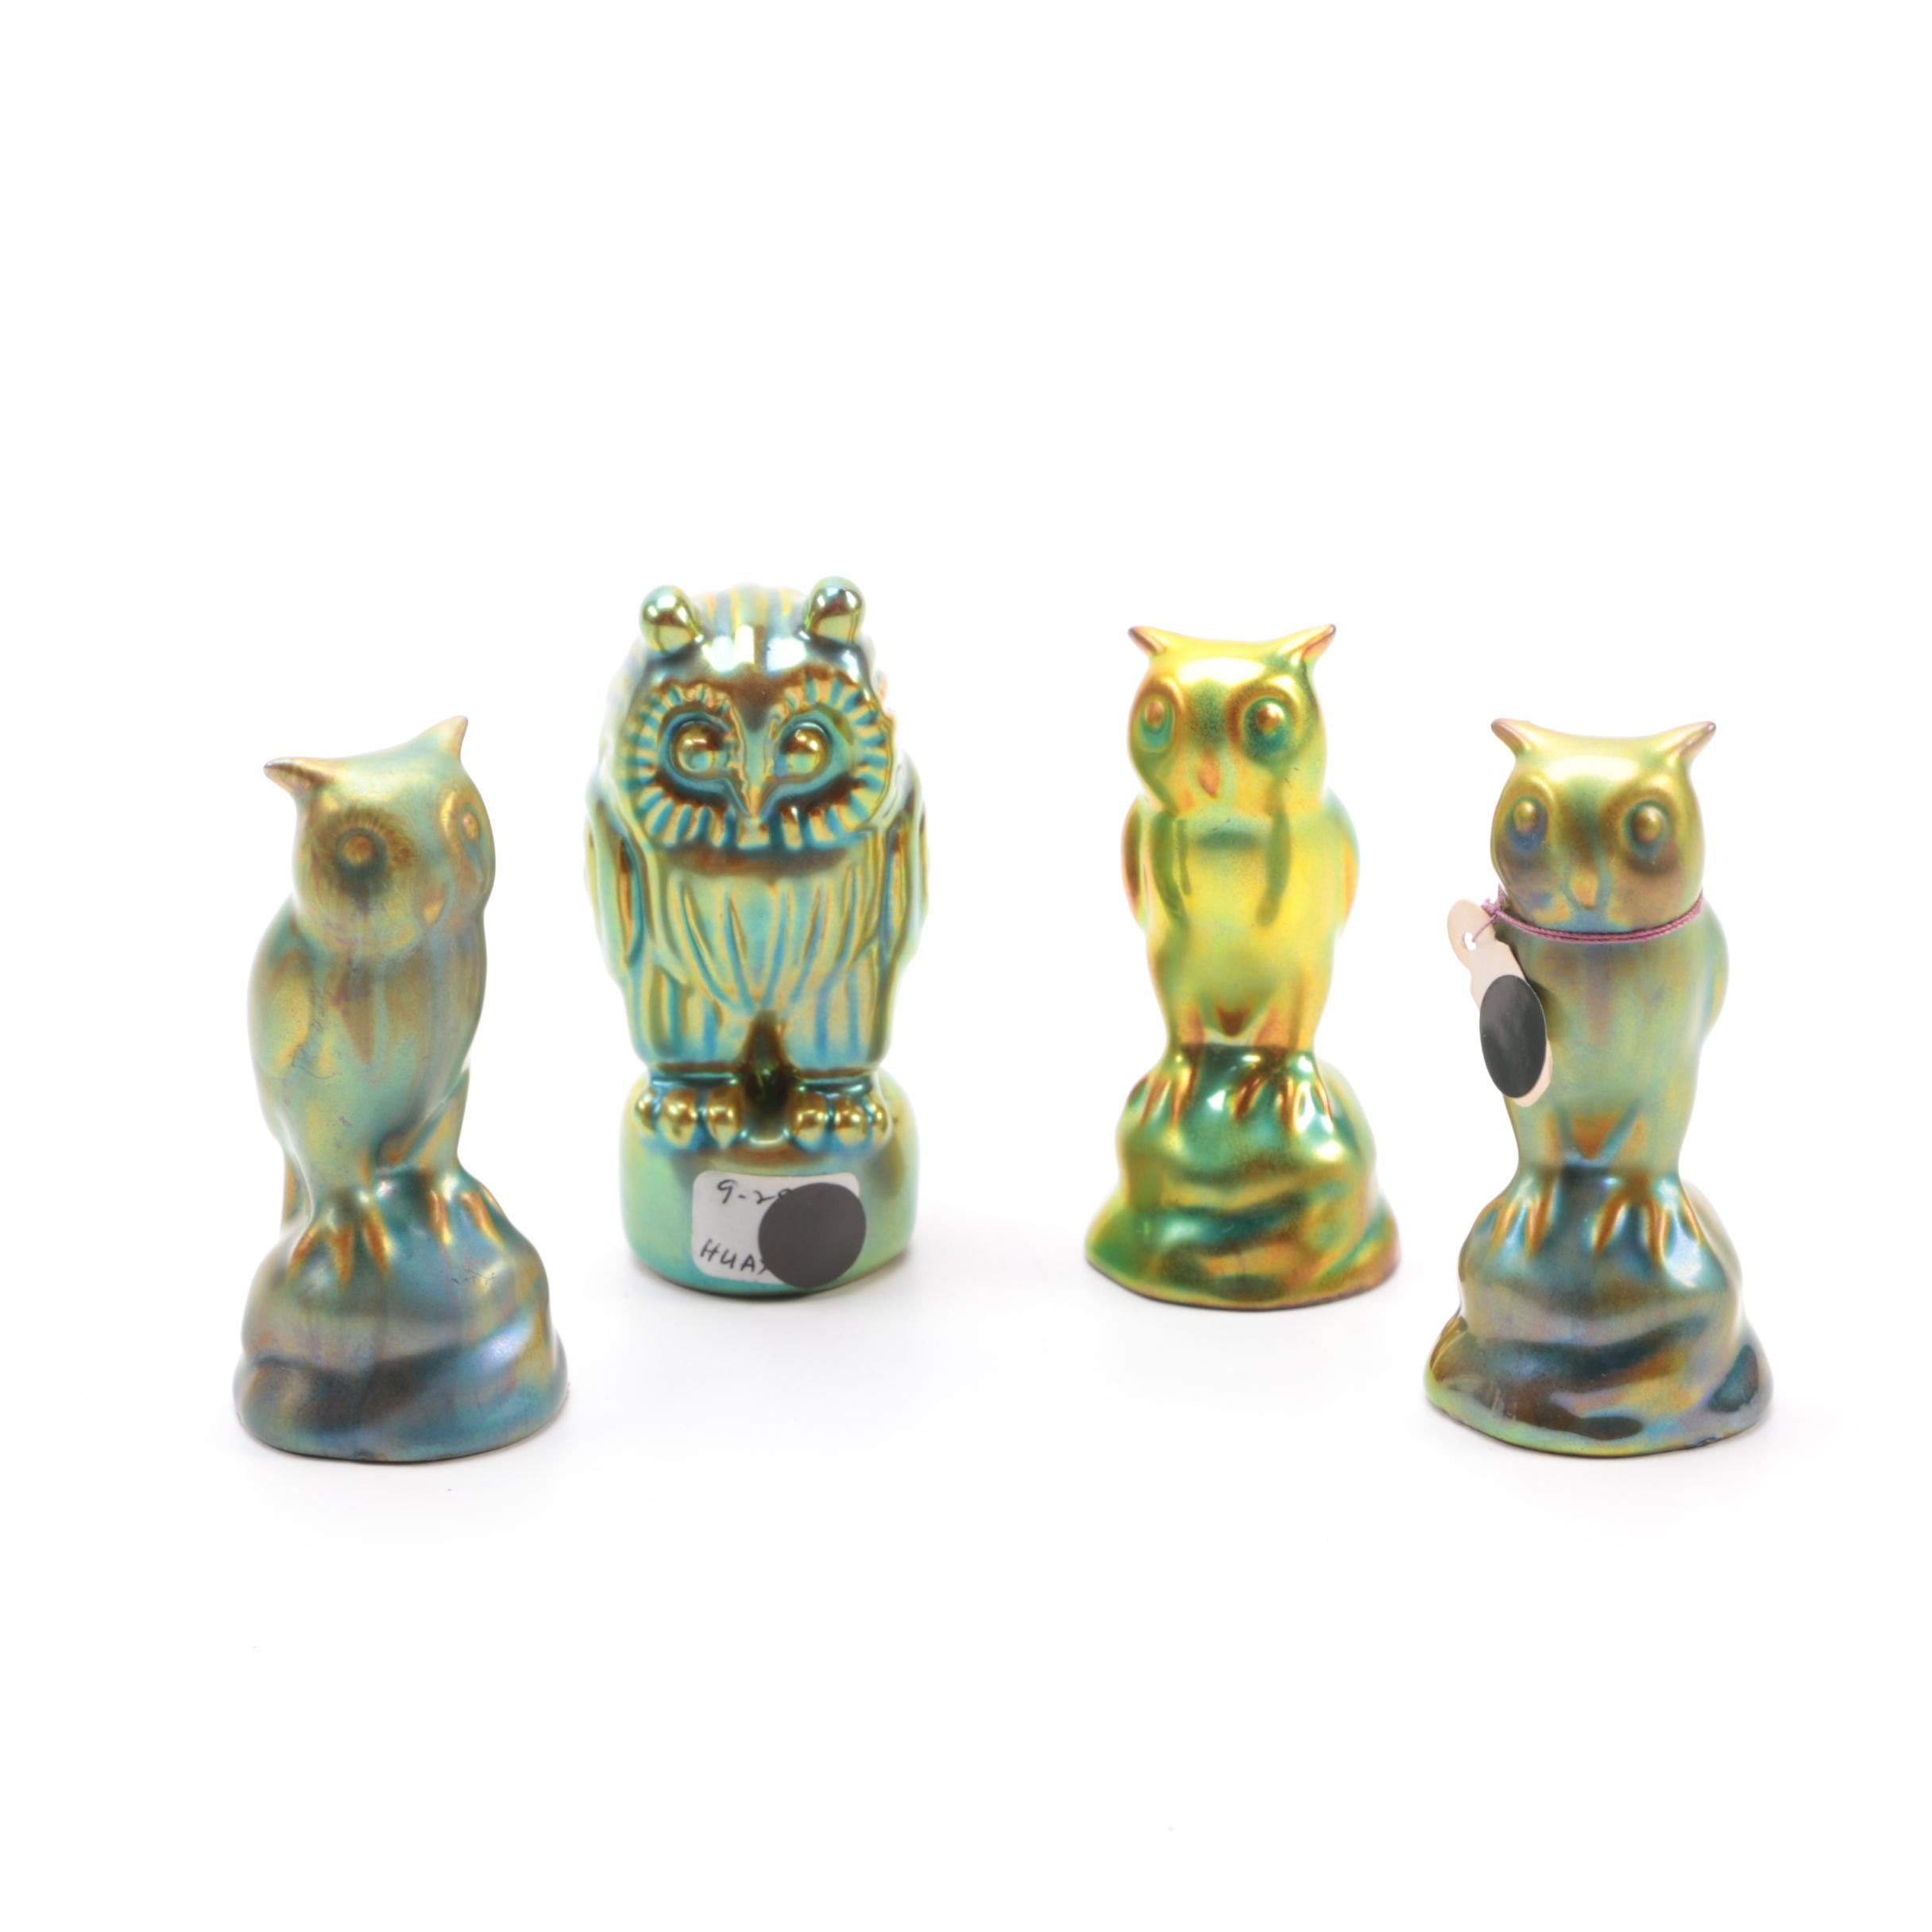 Collection of Zsolnay Pottery Ceramic Owl Figurines